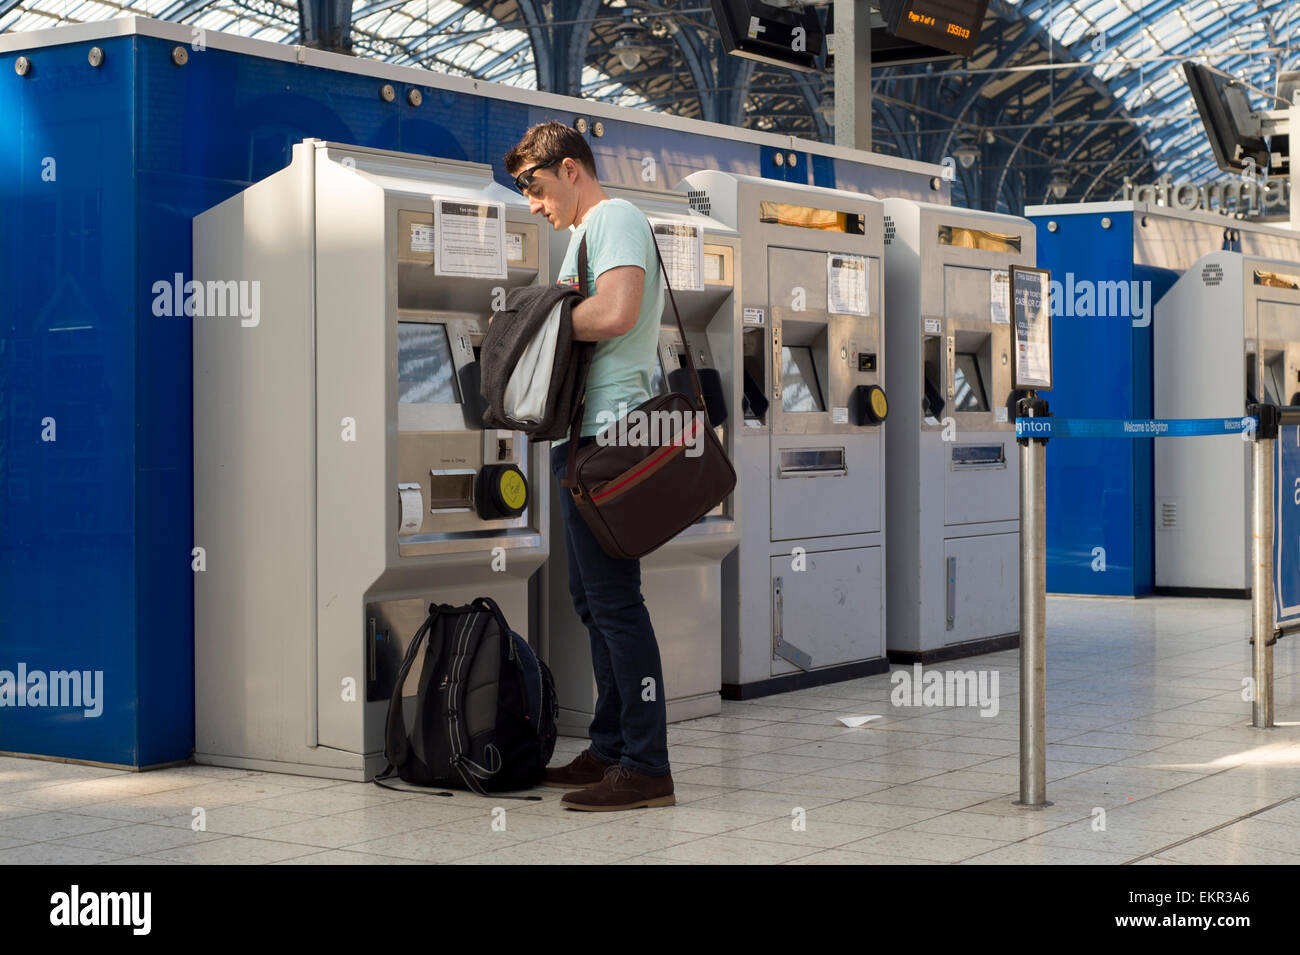 Commuter buying a rail ticket from a self service machine at Brighton Station - Stock Image